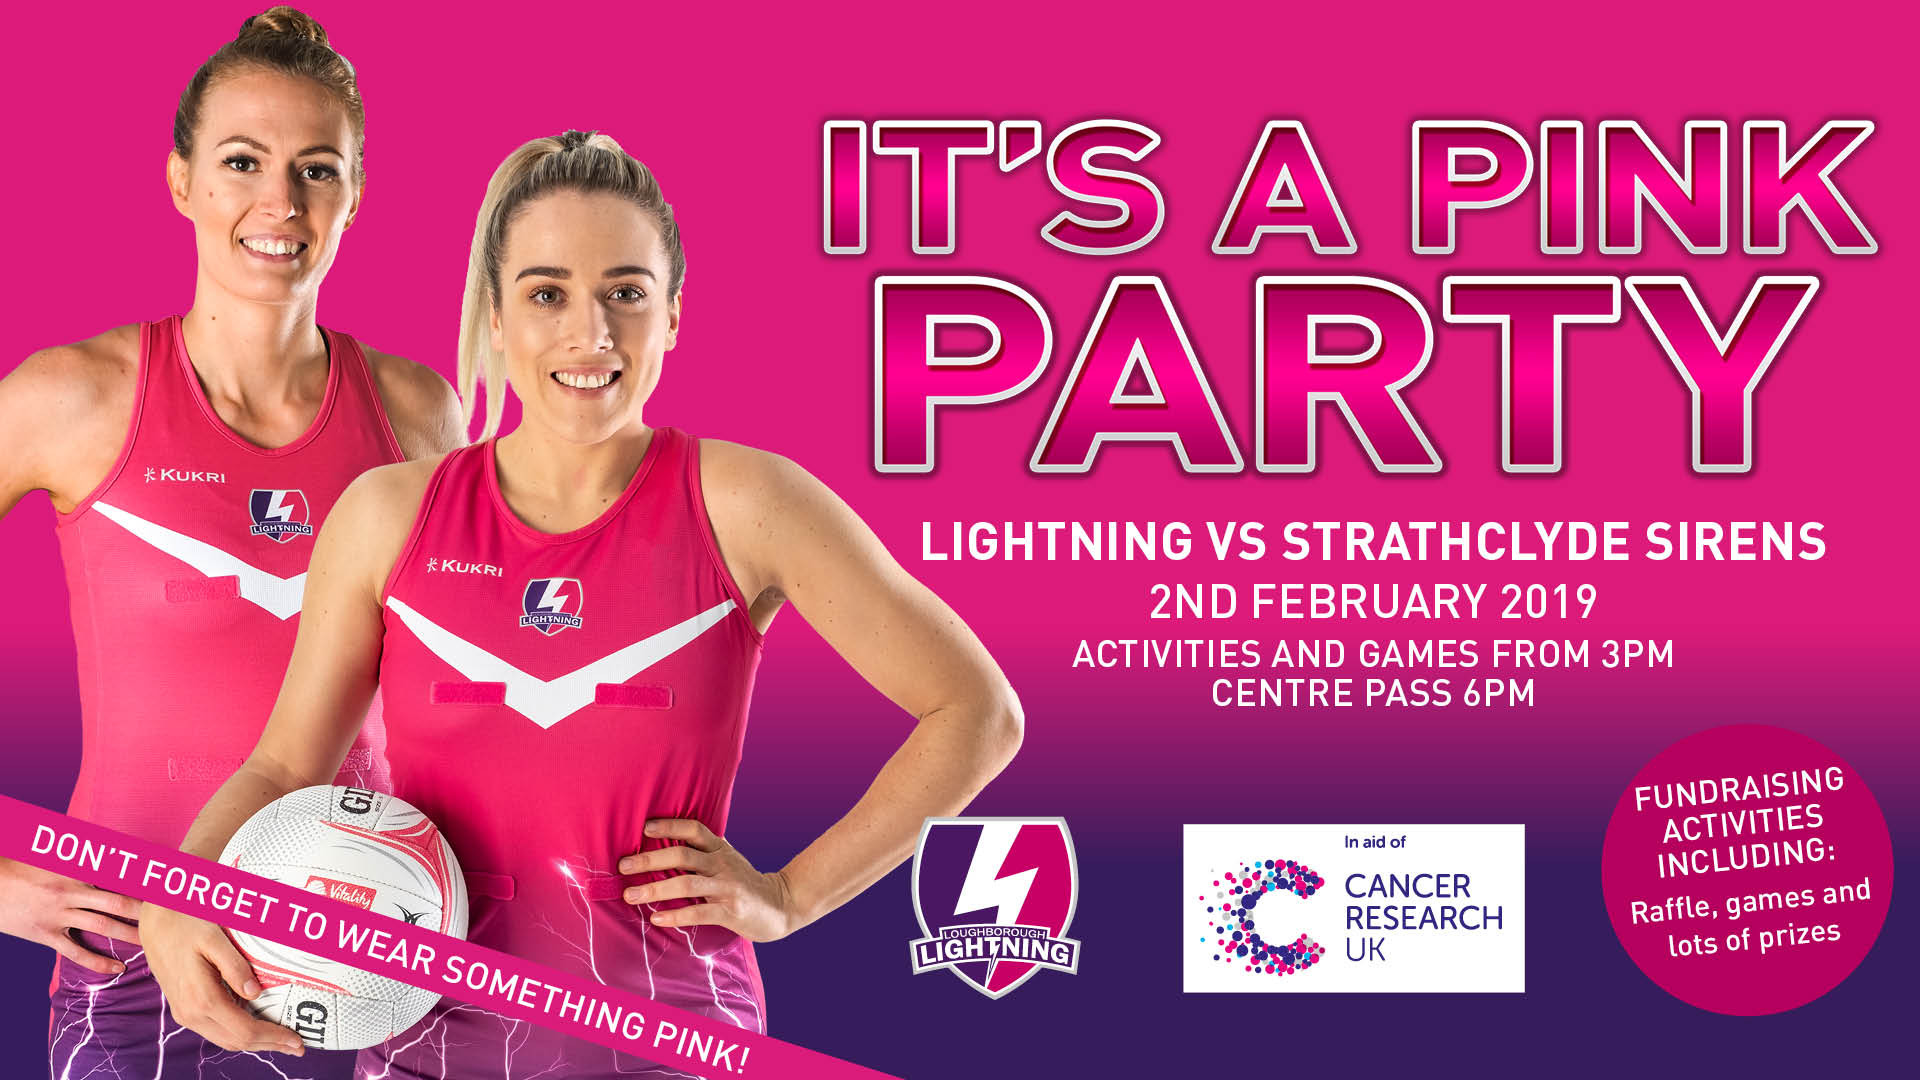 poster to advertise pink party netball event, showing two Loughborough Lightning netball players